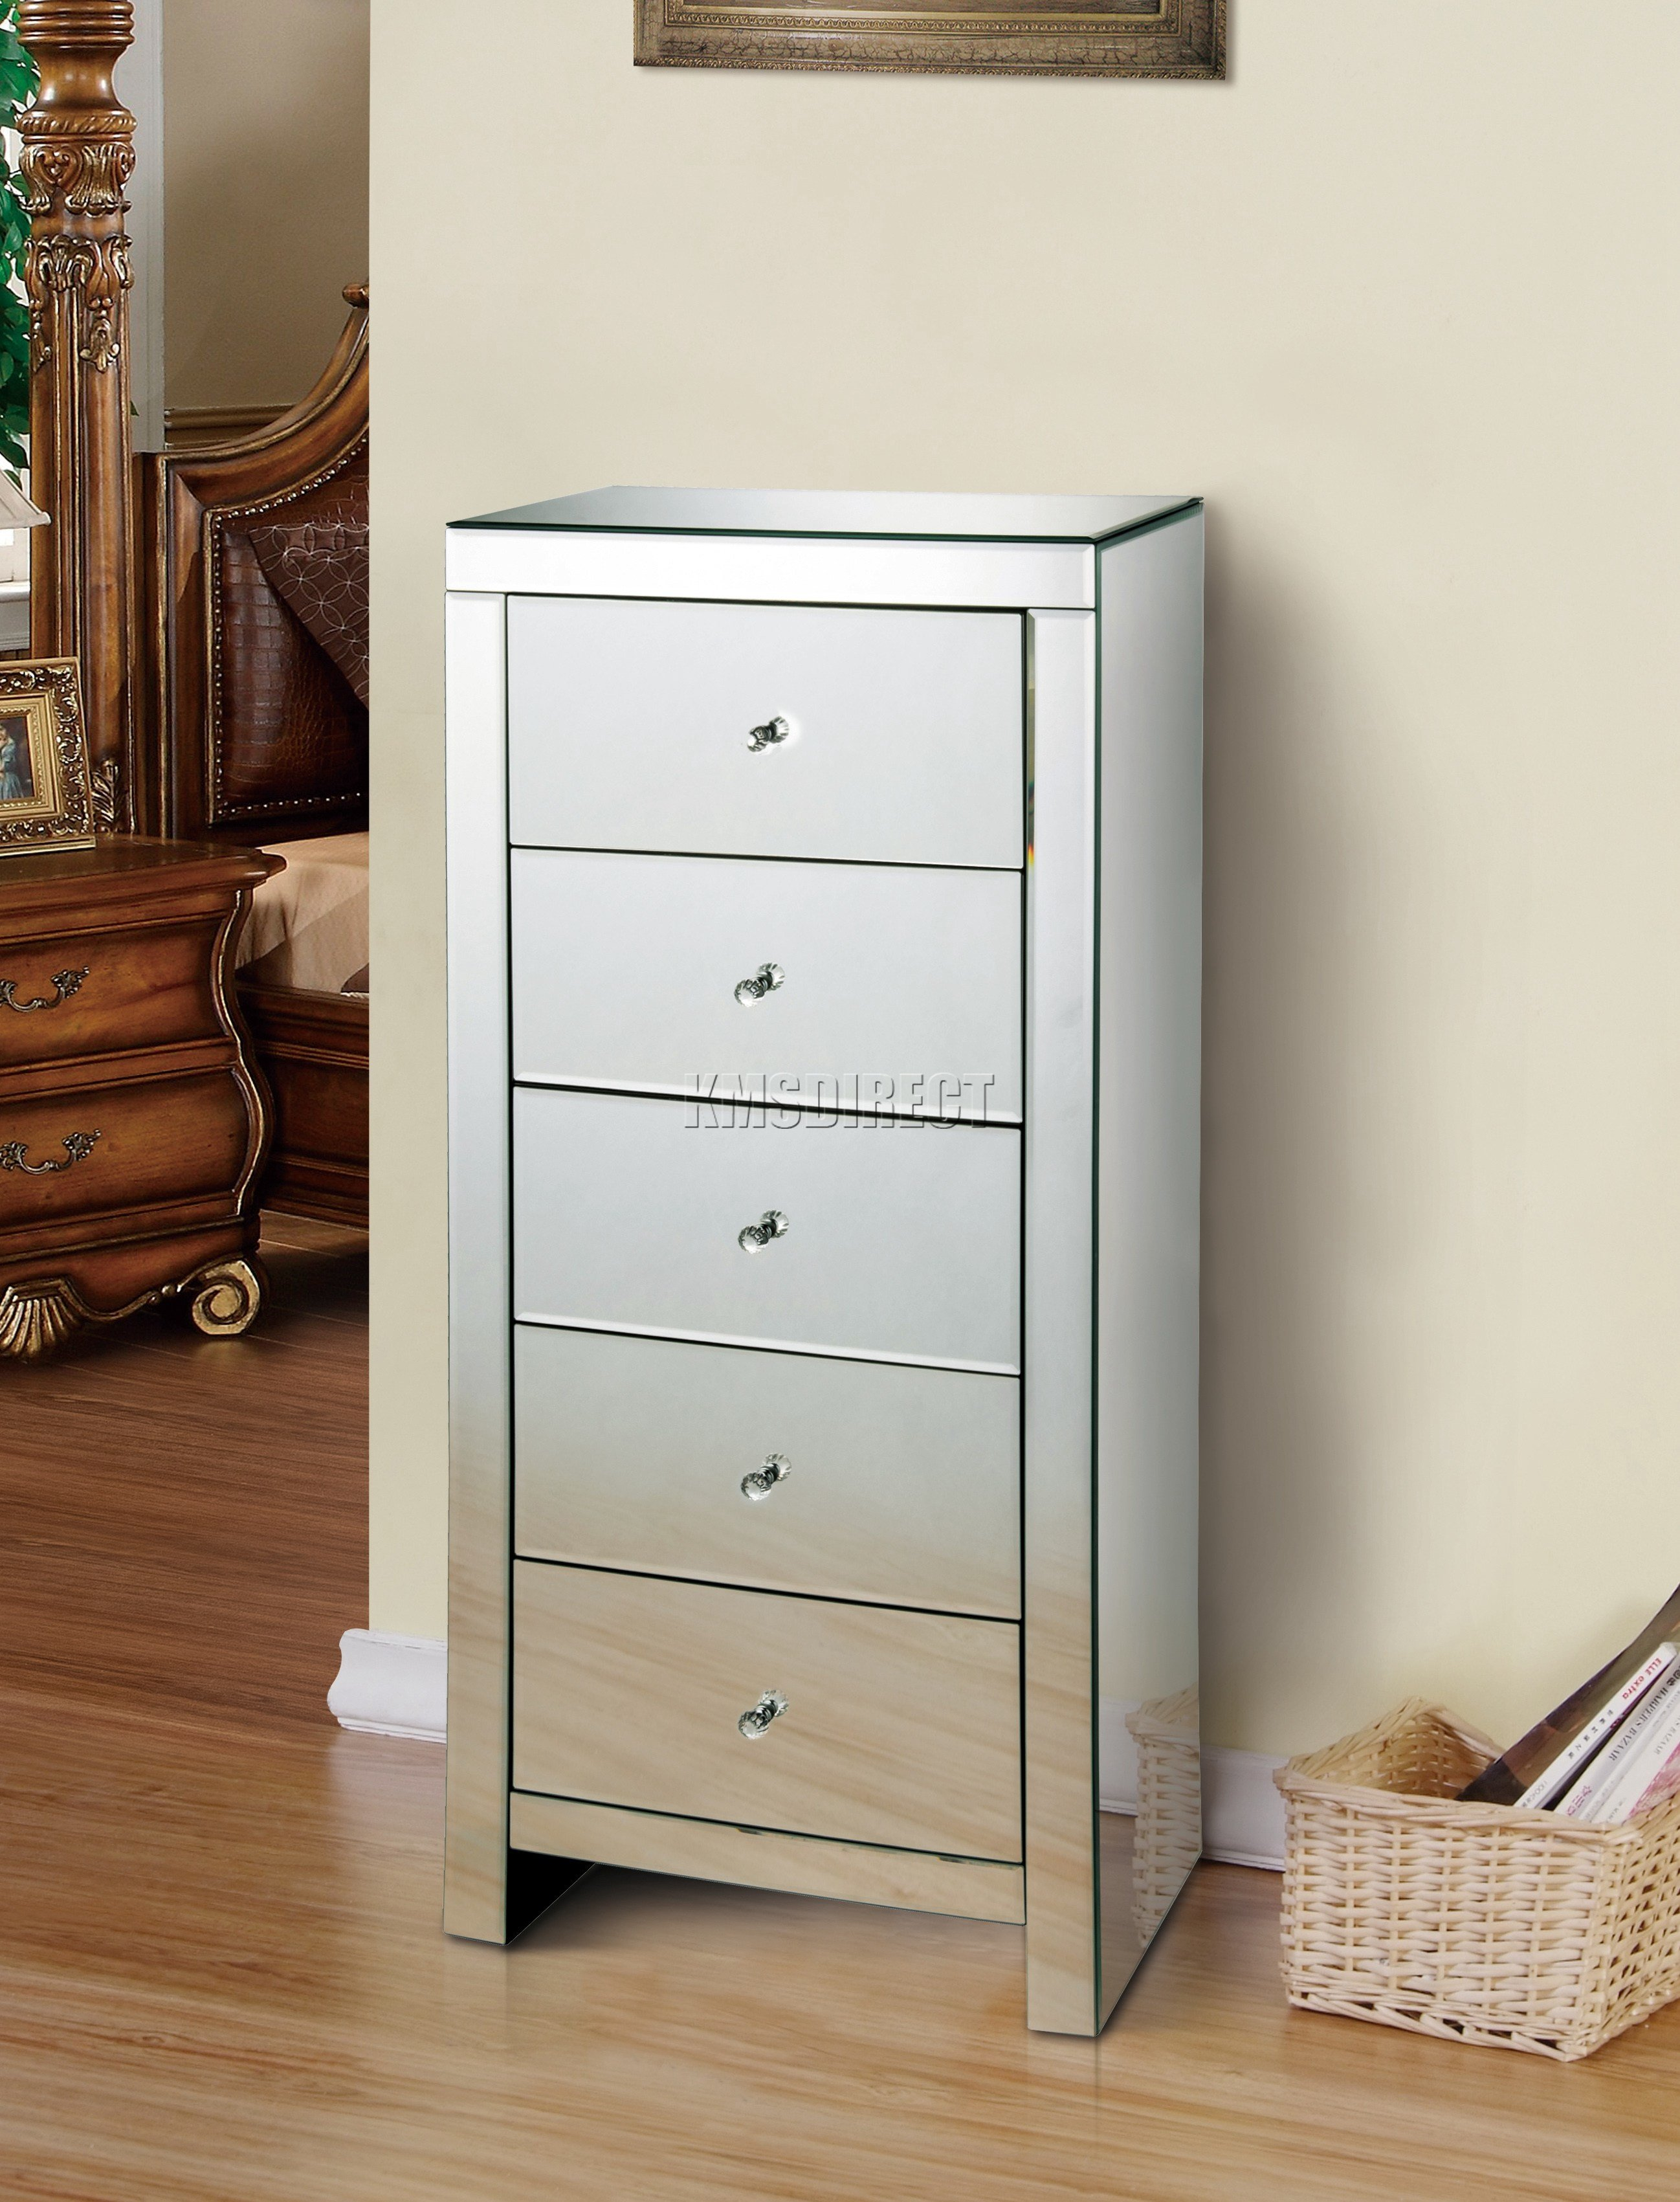 Best Foxhunter Mirrored Furniture Glass 5 Drawer Tallboy Chest With Pictures